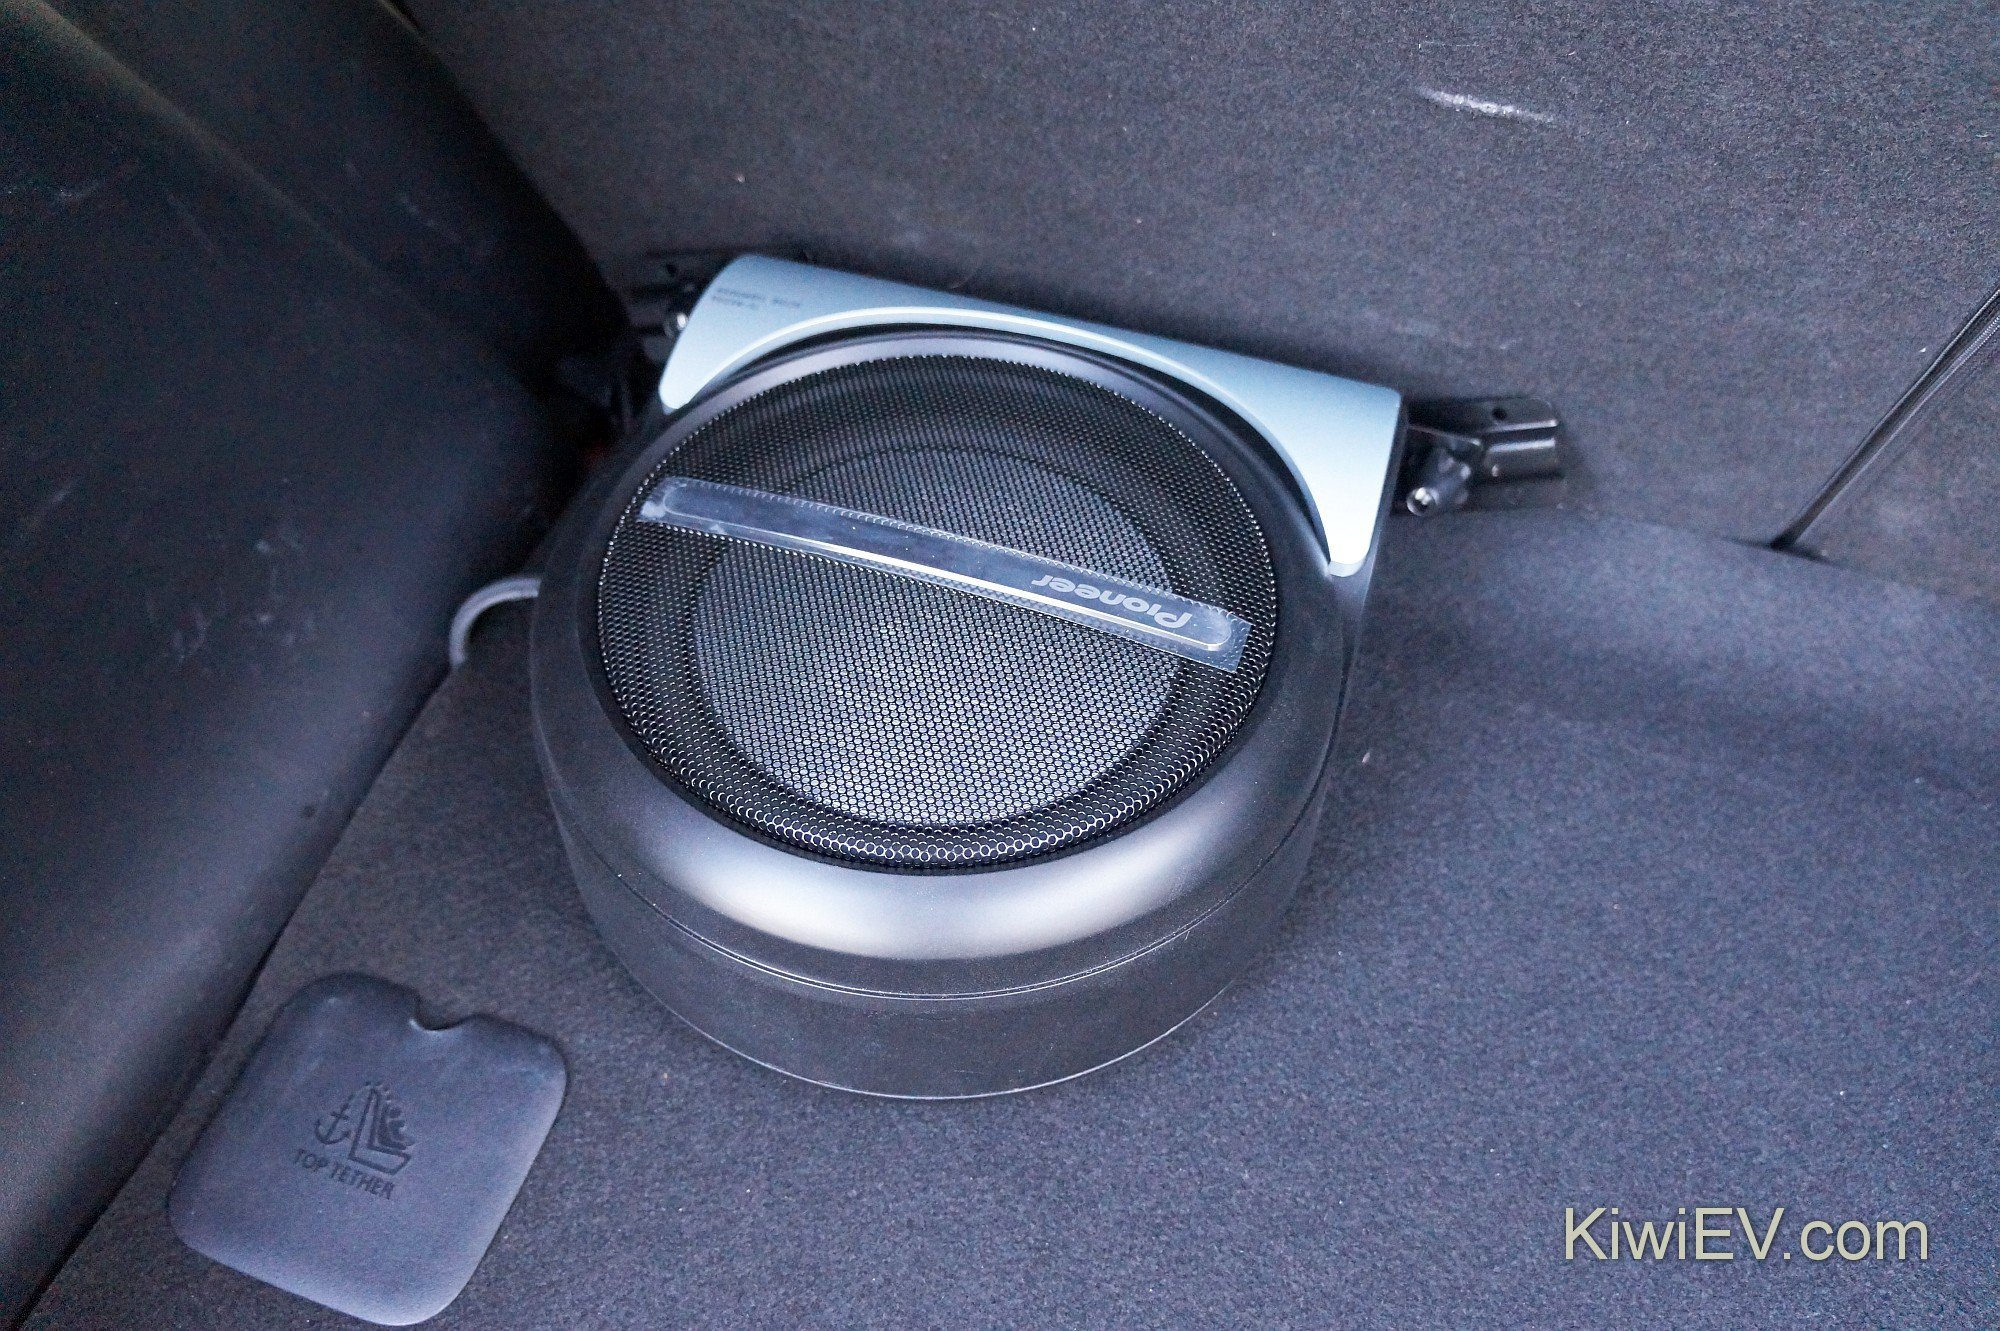 New Stereo And Subwoofer In The Electric Car